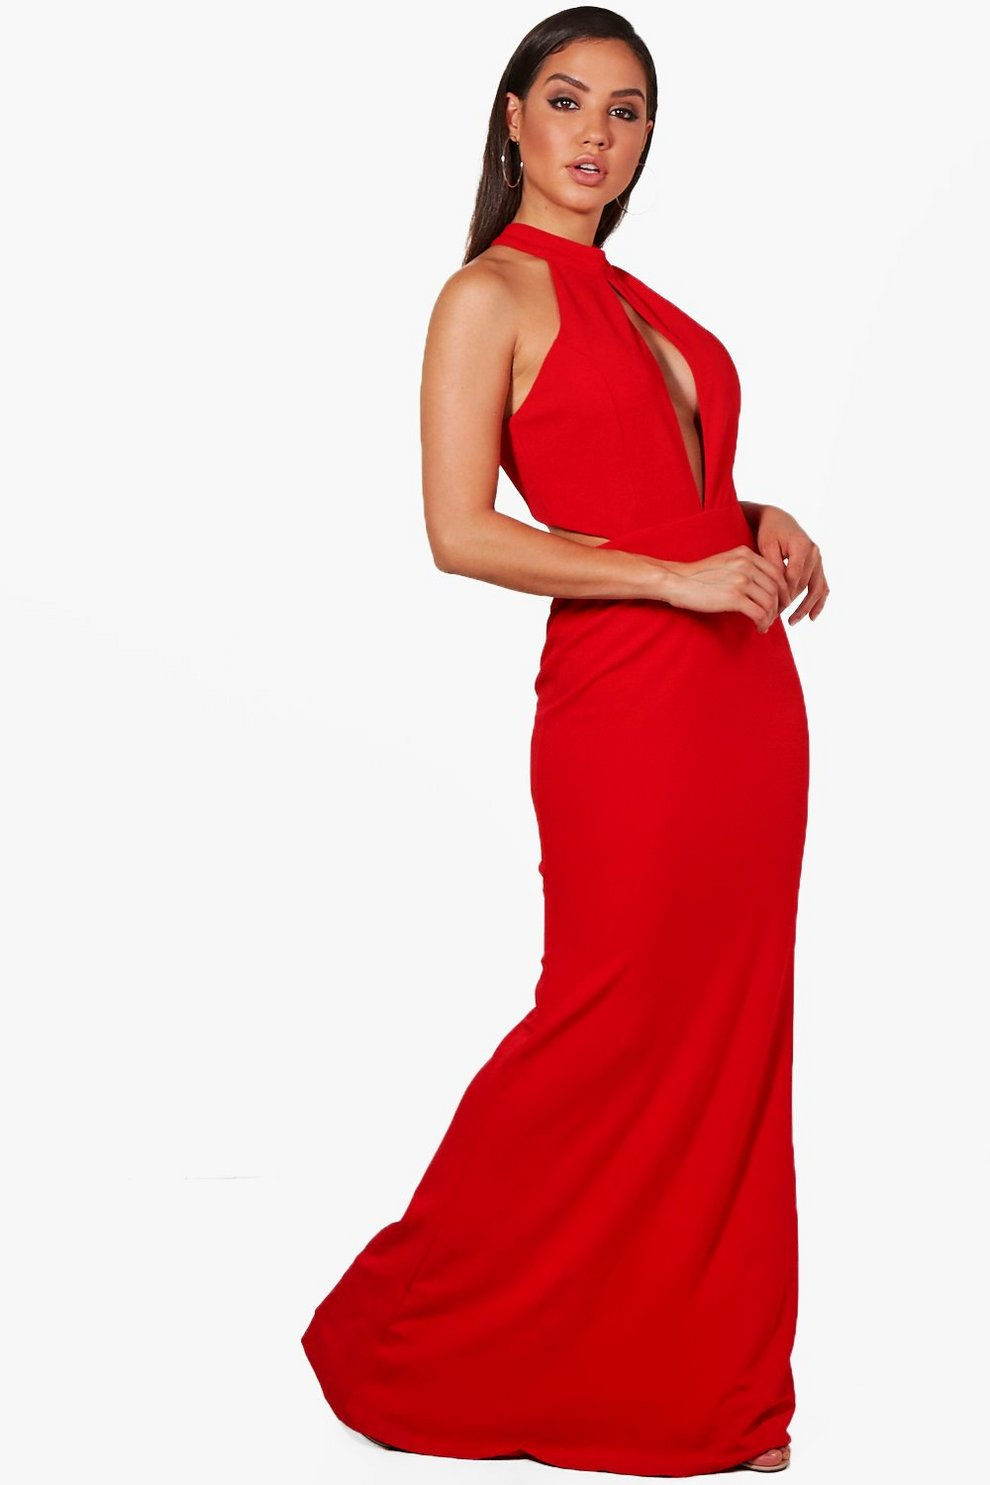 788d1f24cc Womens Red Cut Out Detail Fishtail Maxi Dress. Hover to zoom